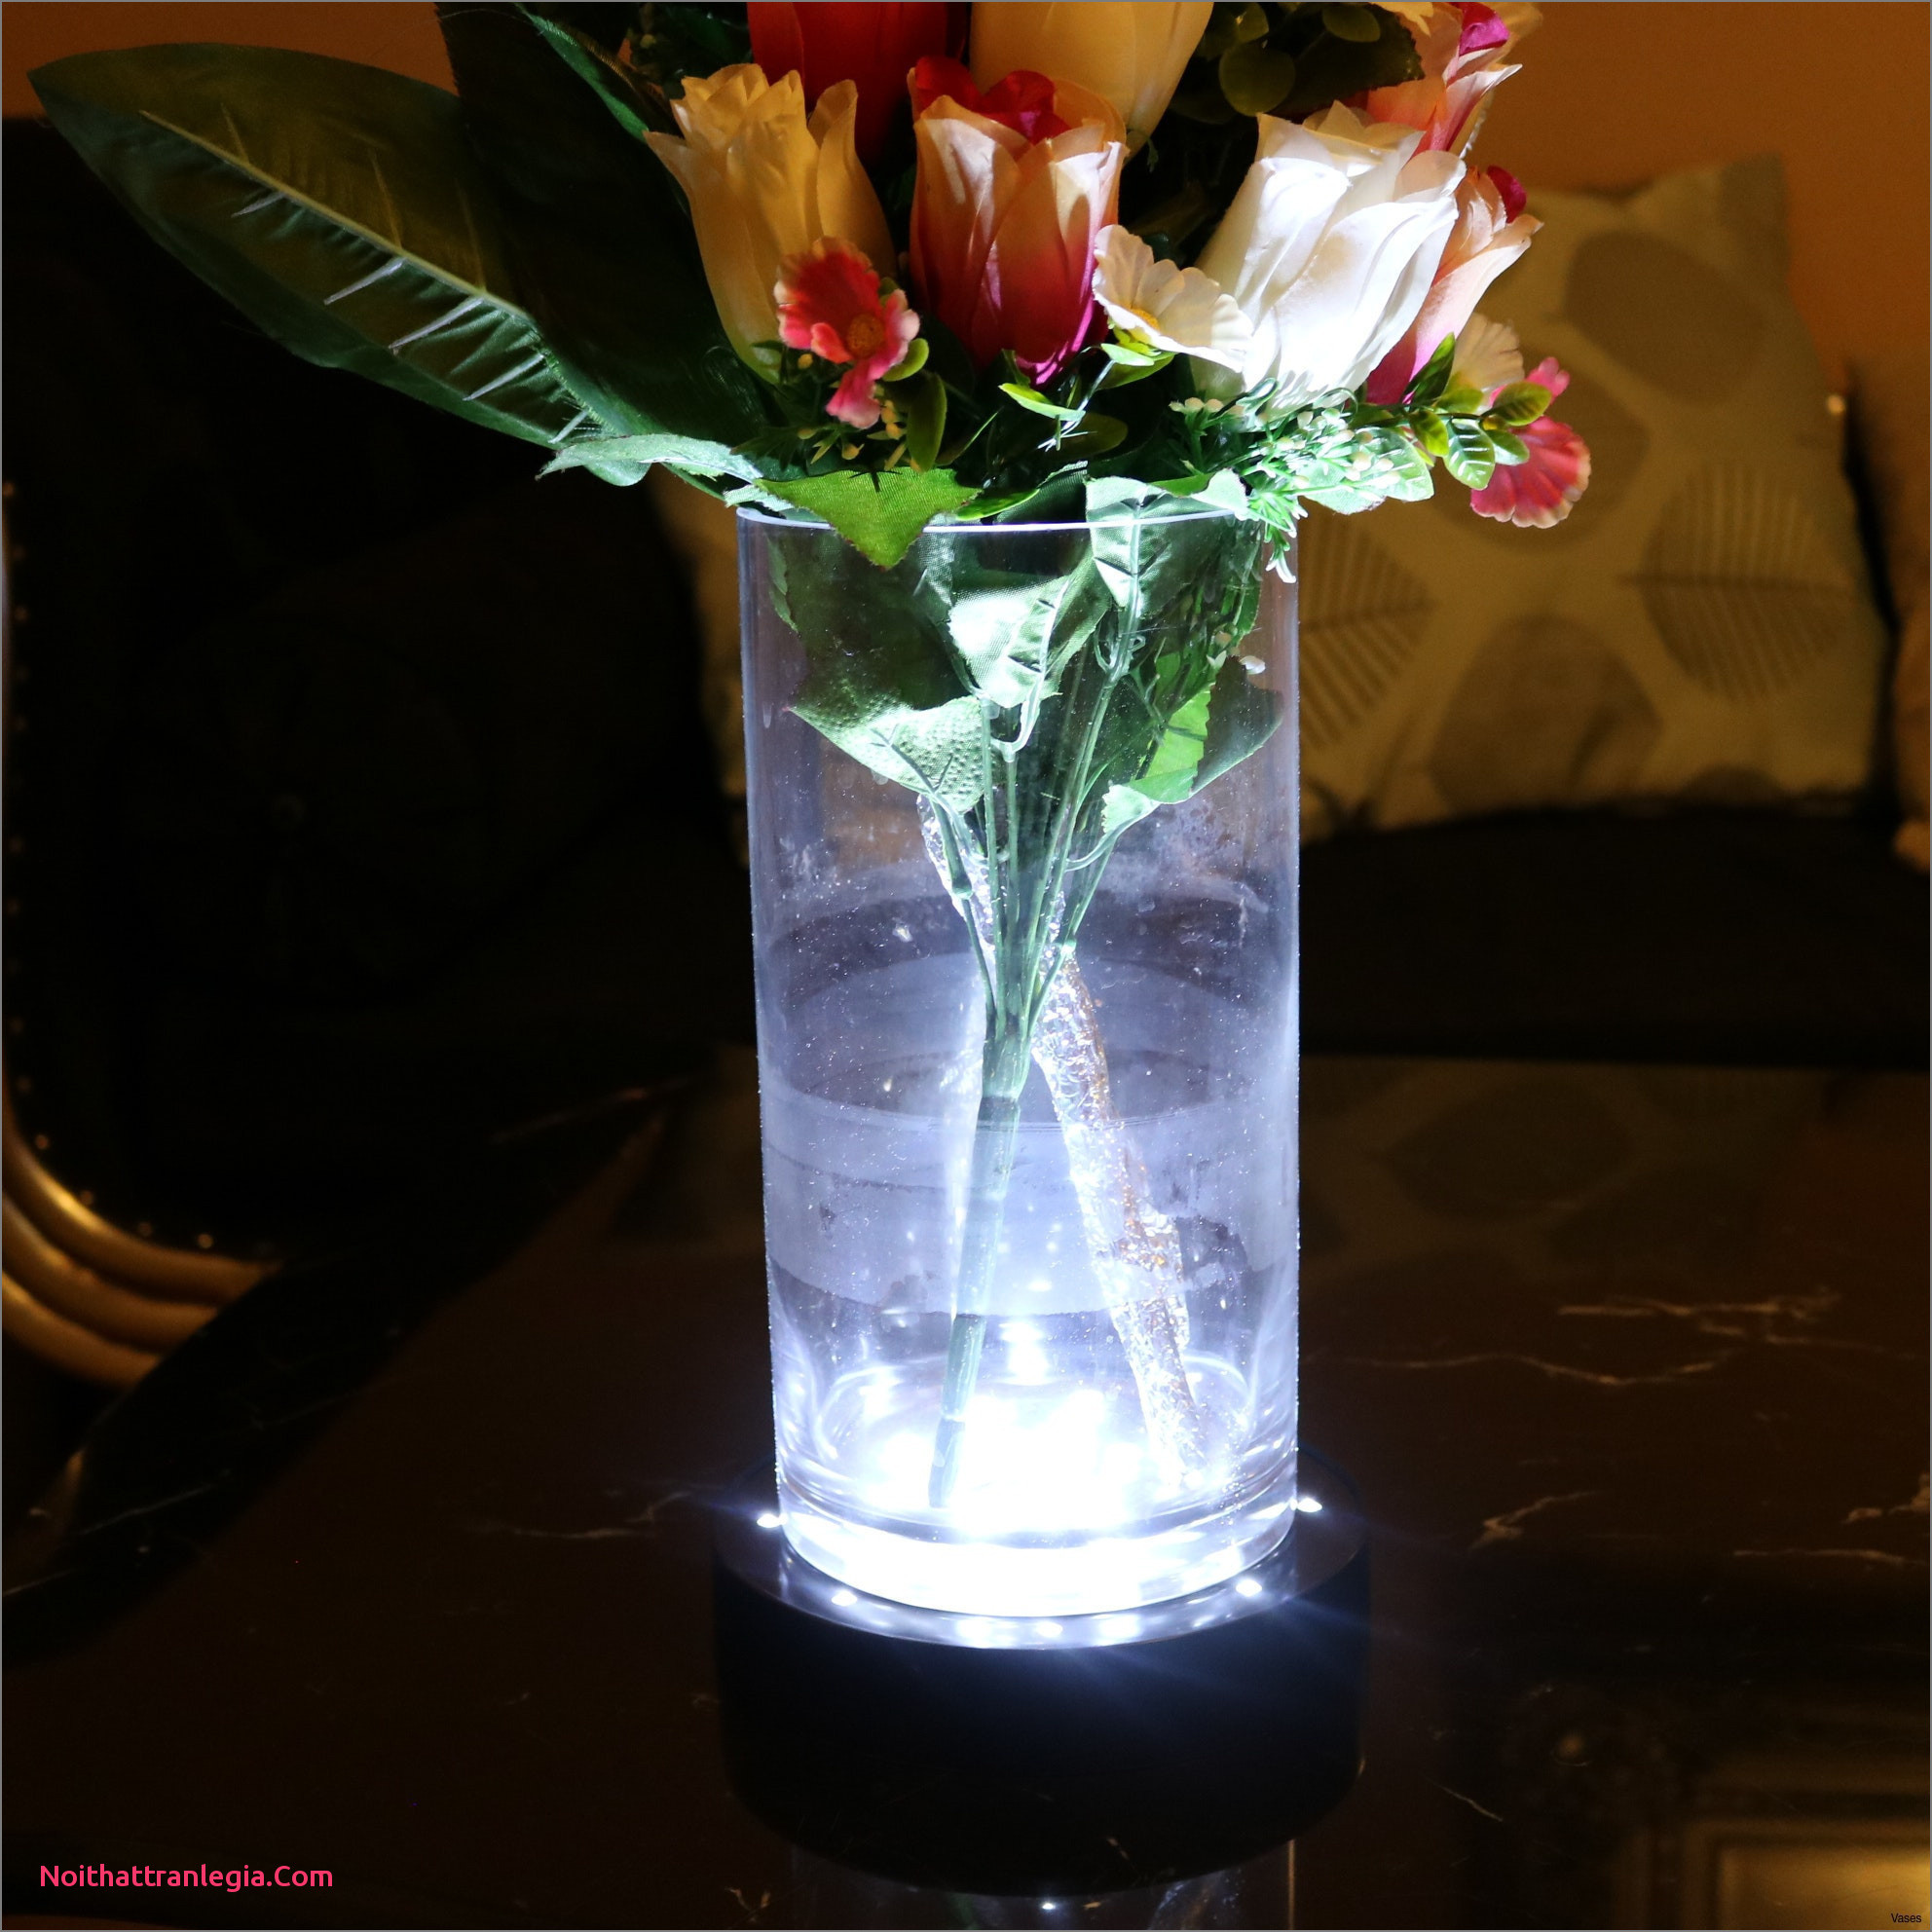 cheap clear vases for weddings of 20 how to make mercury glass vases noithattranlegia vases design pertaining to hanging glass vase gallery vases disposable plastic single cheap flower rose vasei 0d design hanging